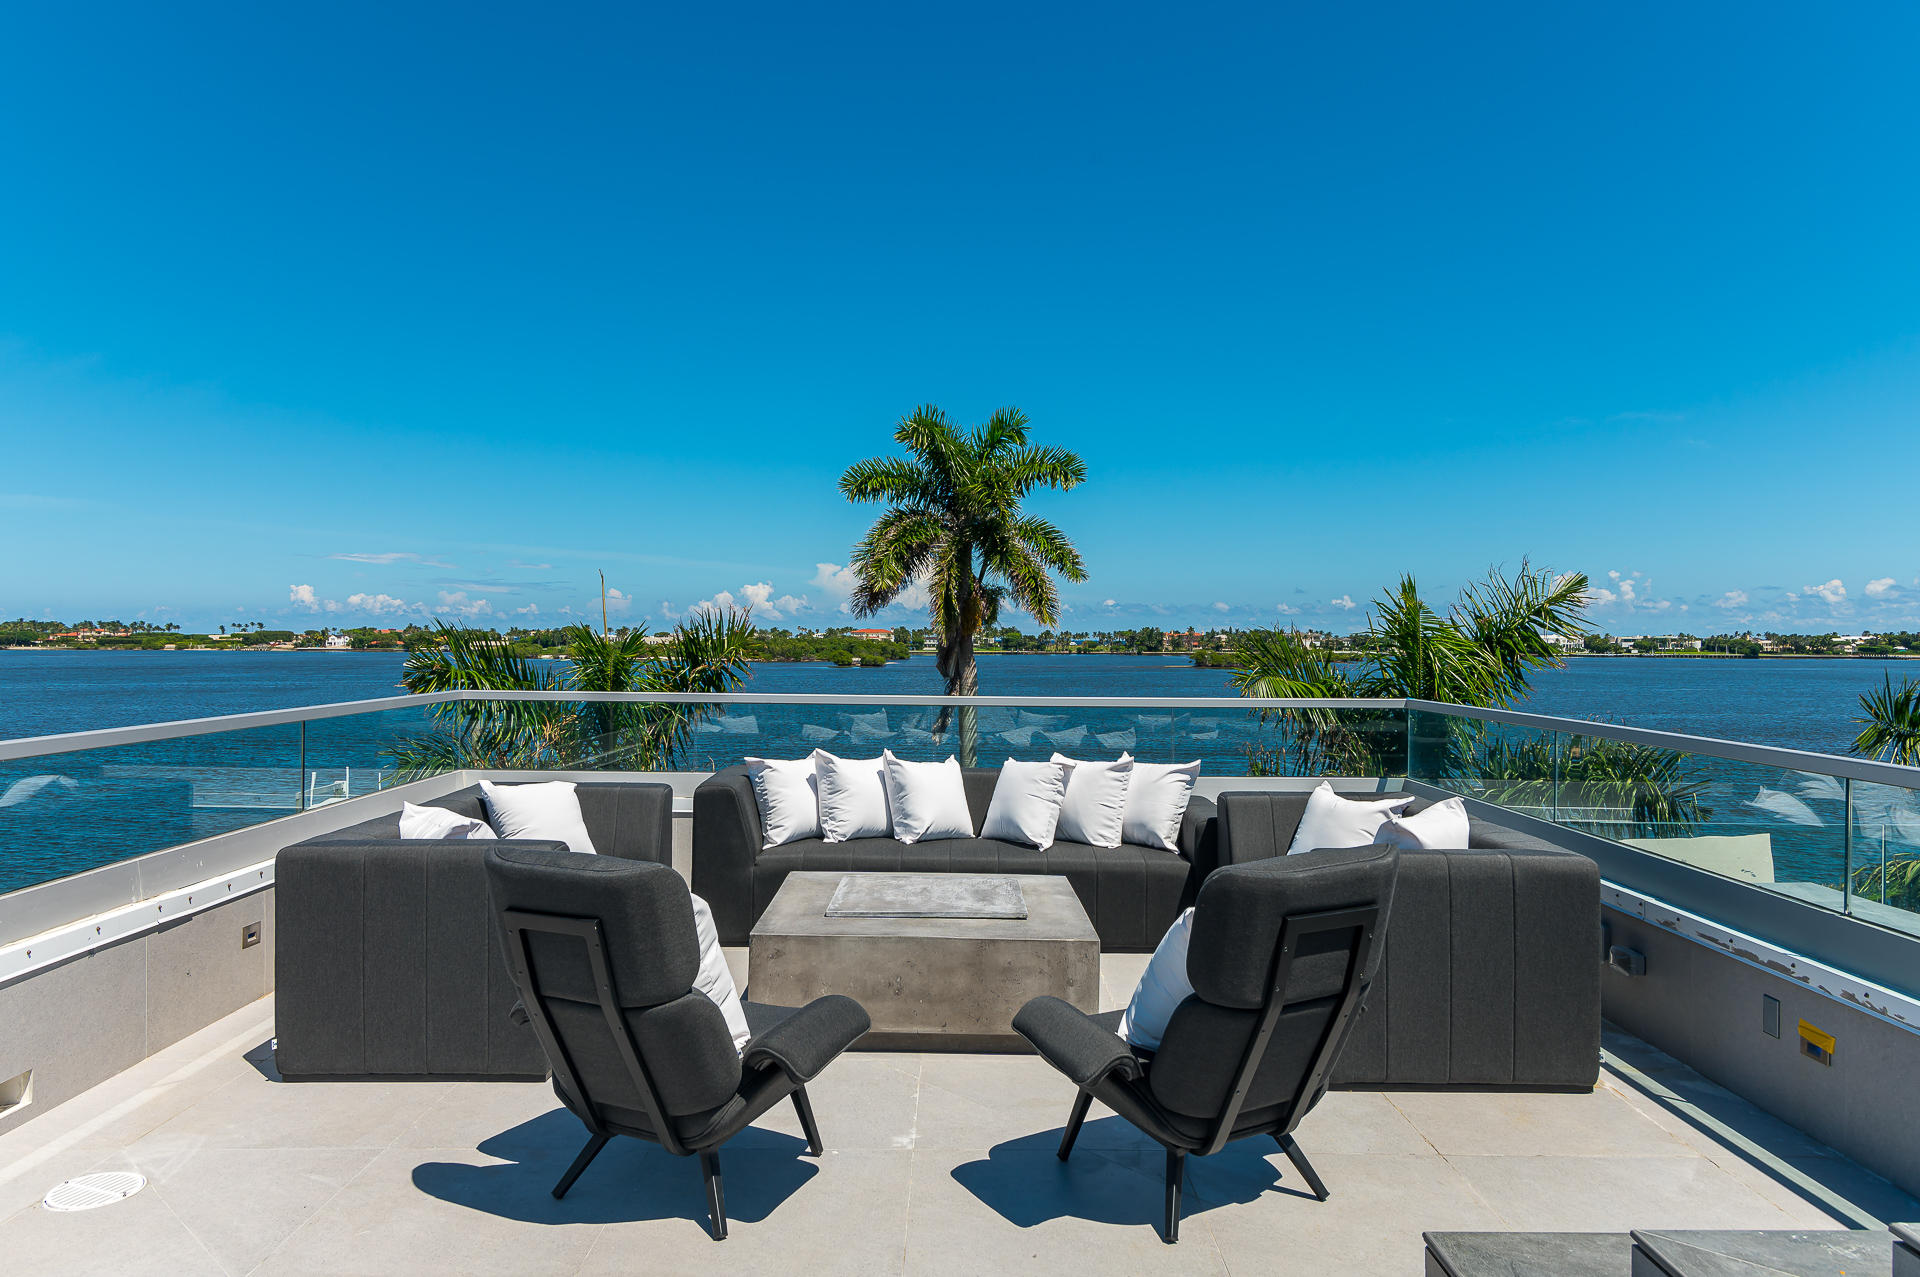 Roof Top views of the Intracoastal